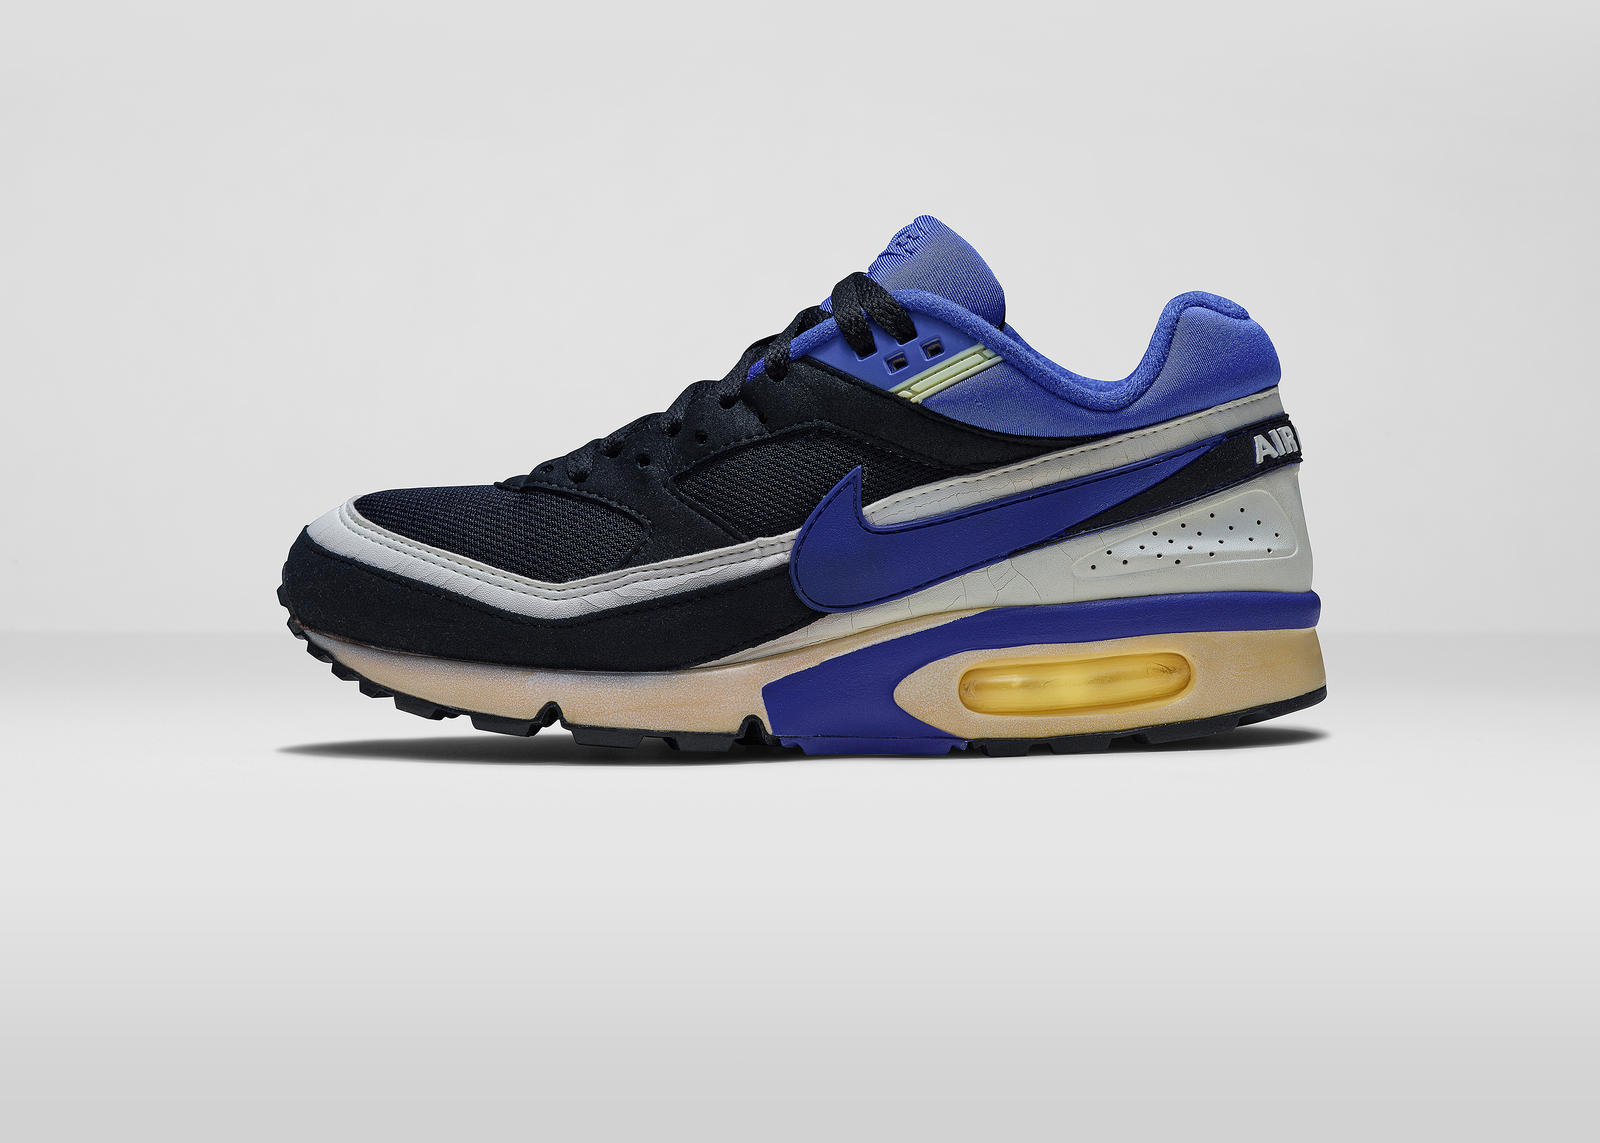 best website 82b27 c8f3c Air Max BW (1991). Nike_AirMaxDay_2015_BW_LAT. Nike_AirMaxDay_2015_BW_OUT